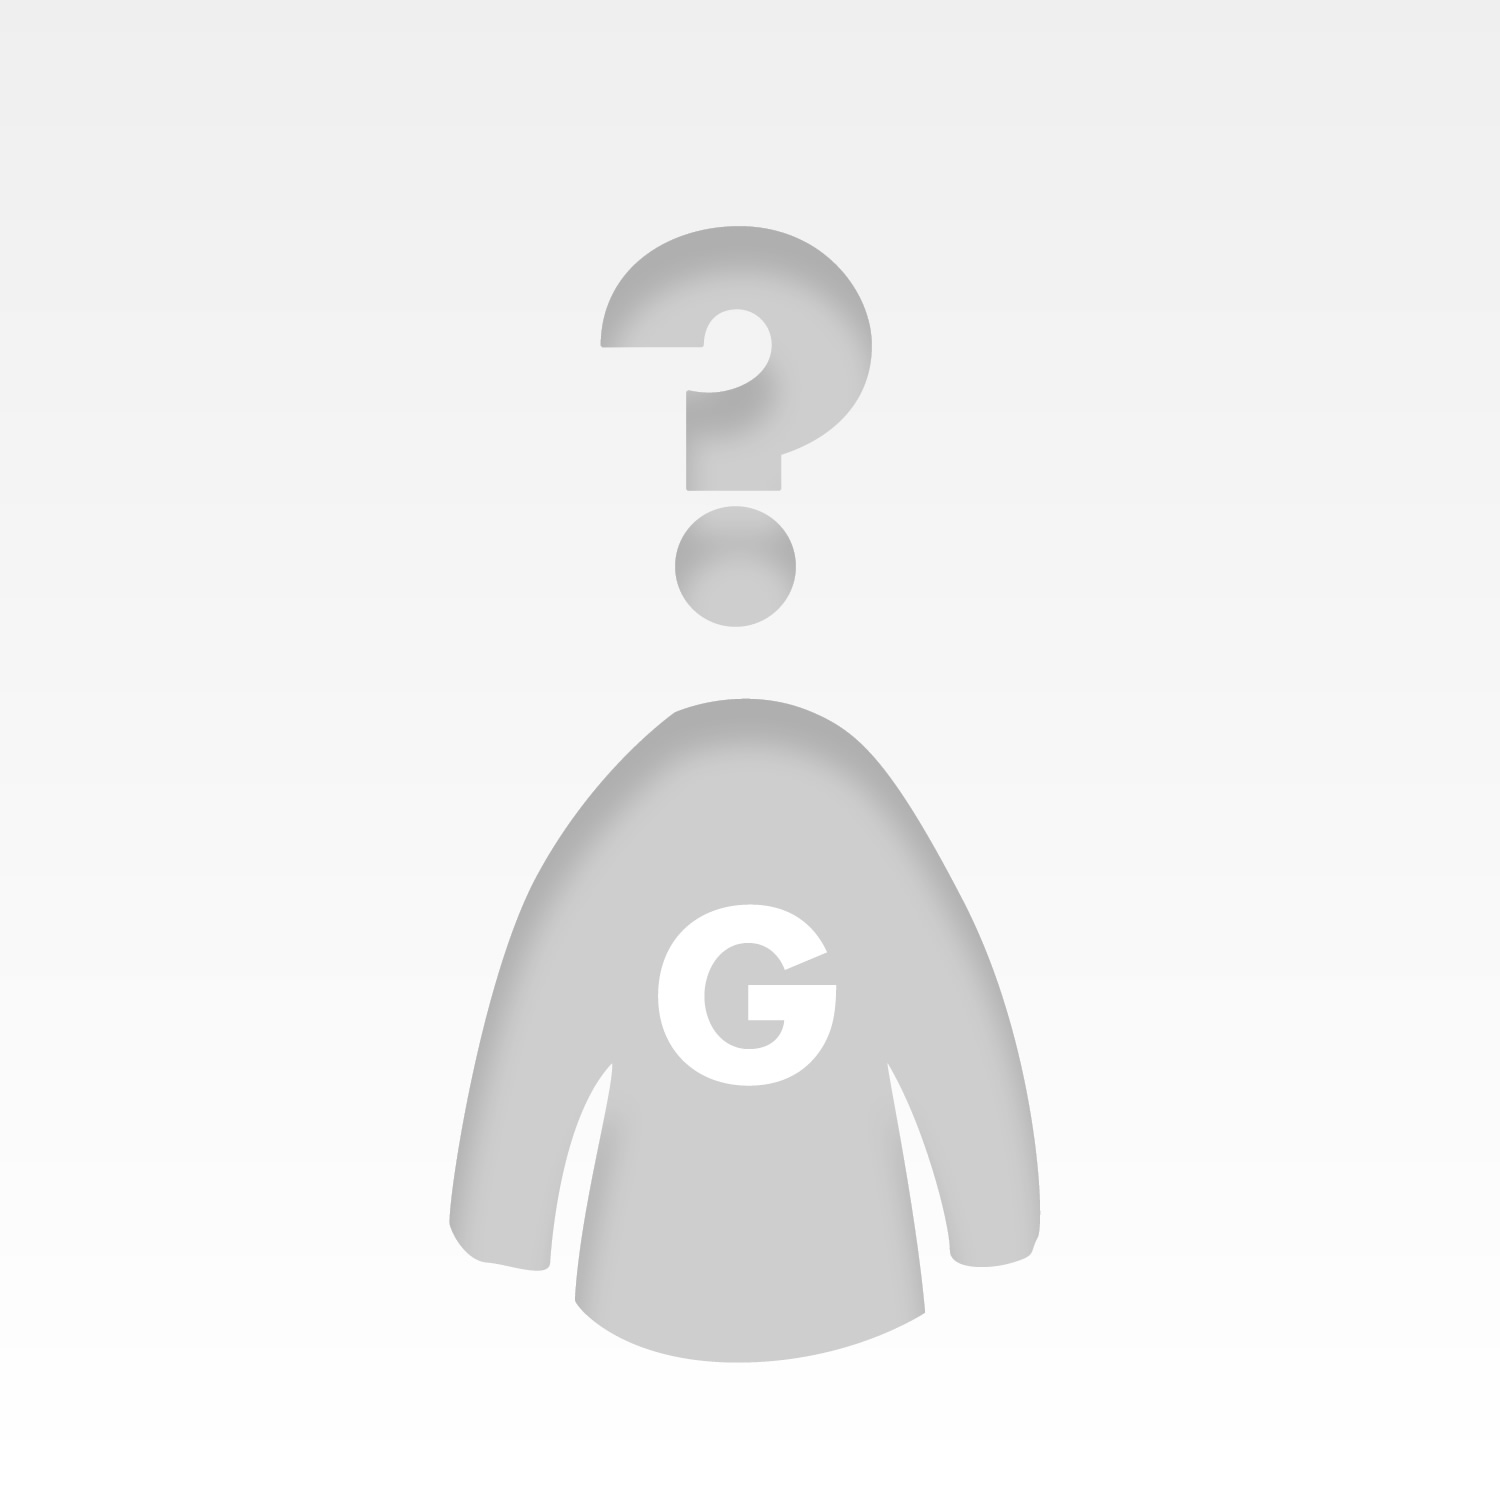 The s001.jilibug's avatar